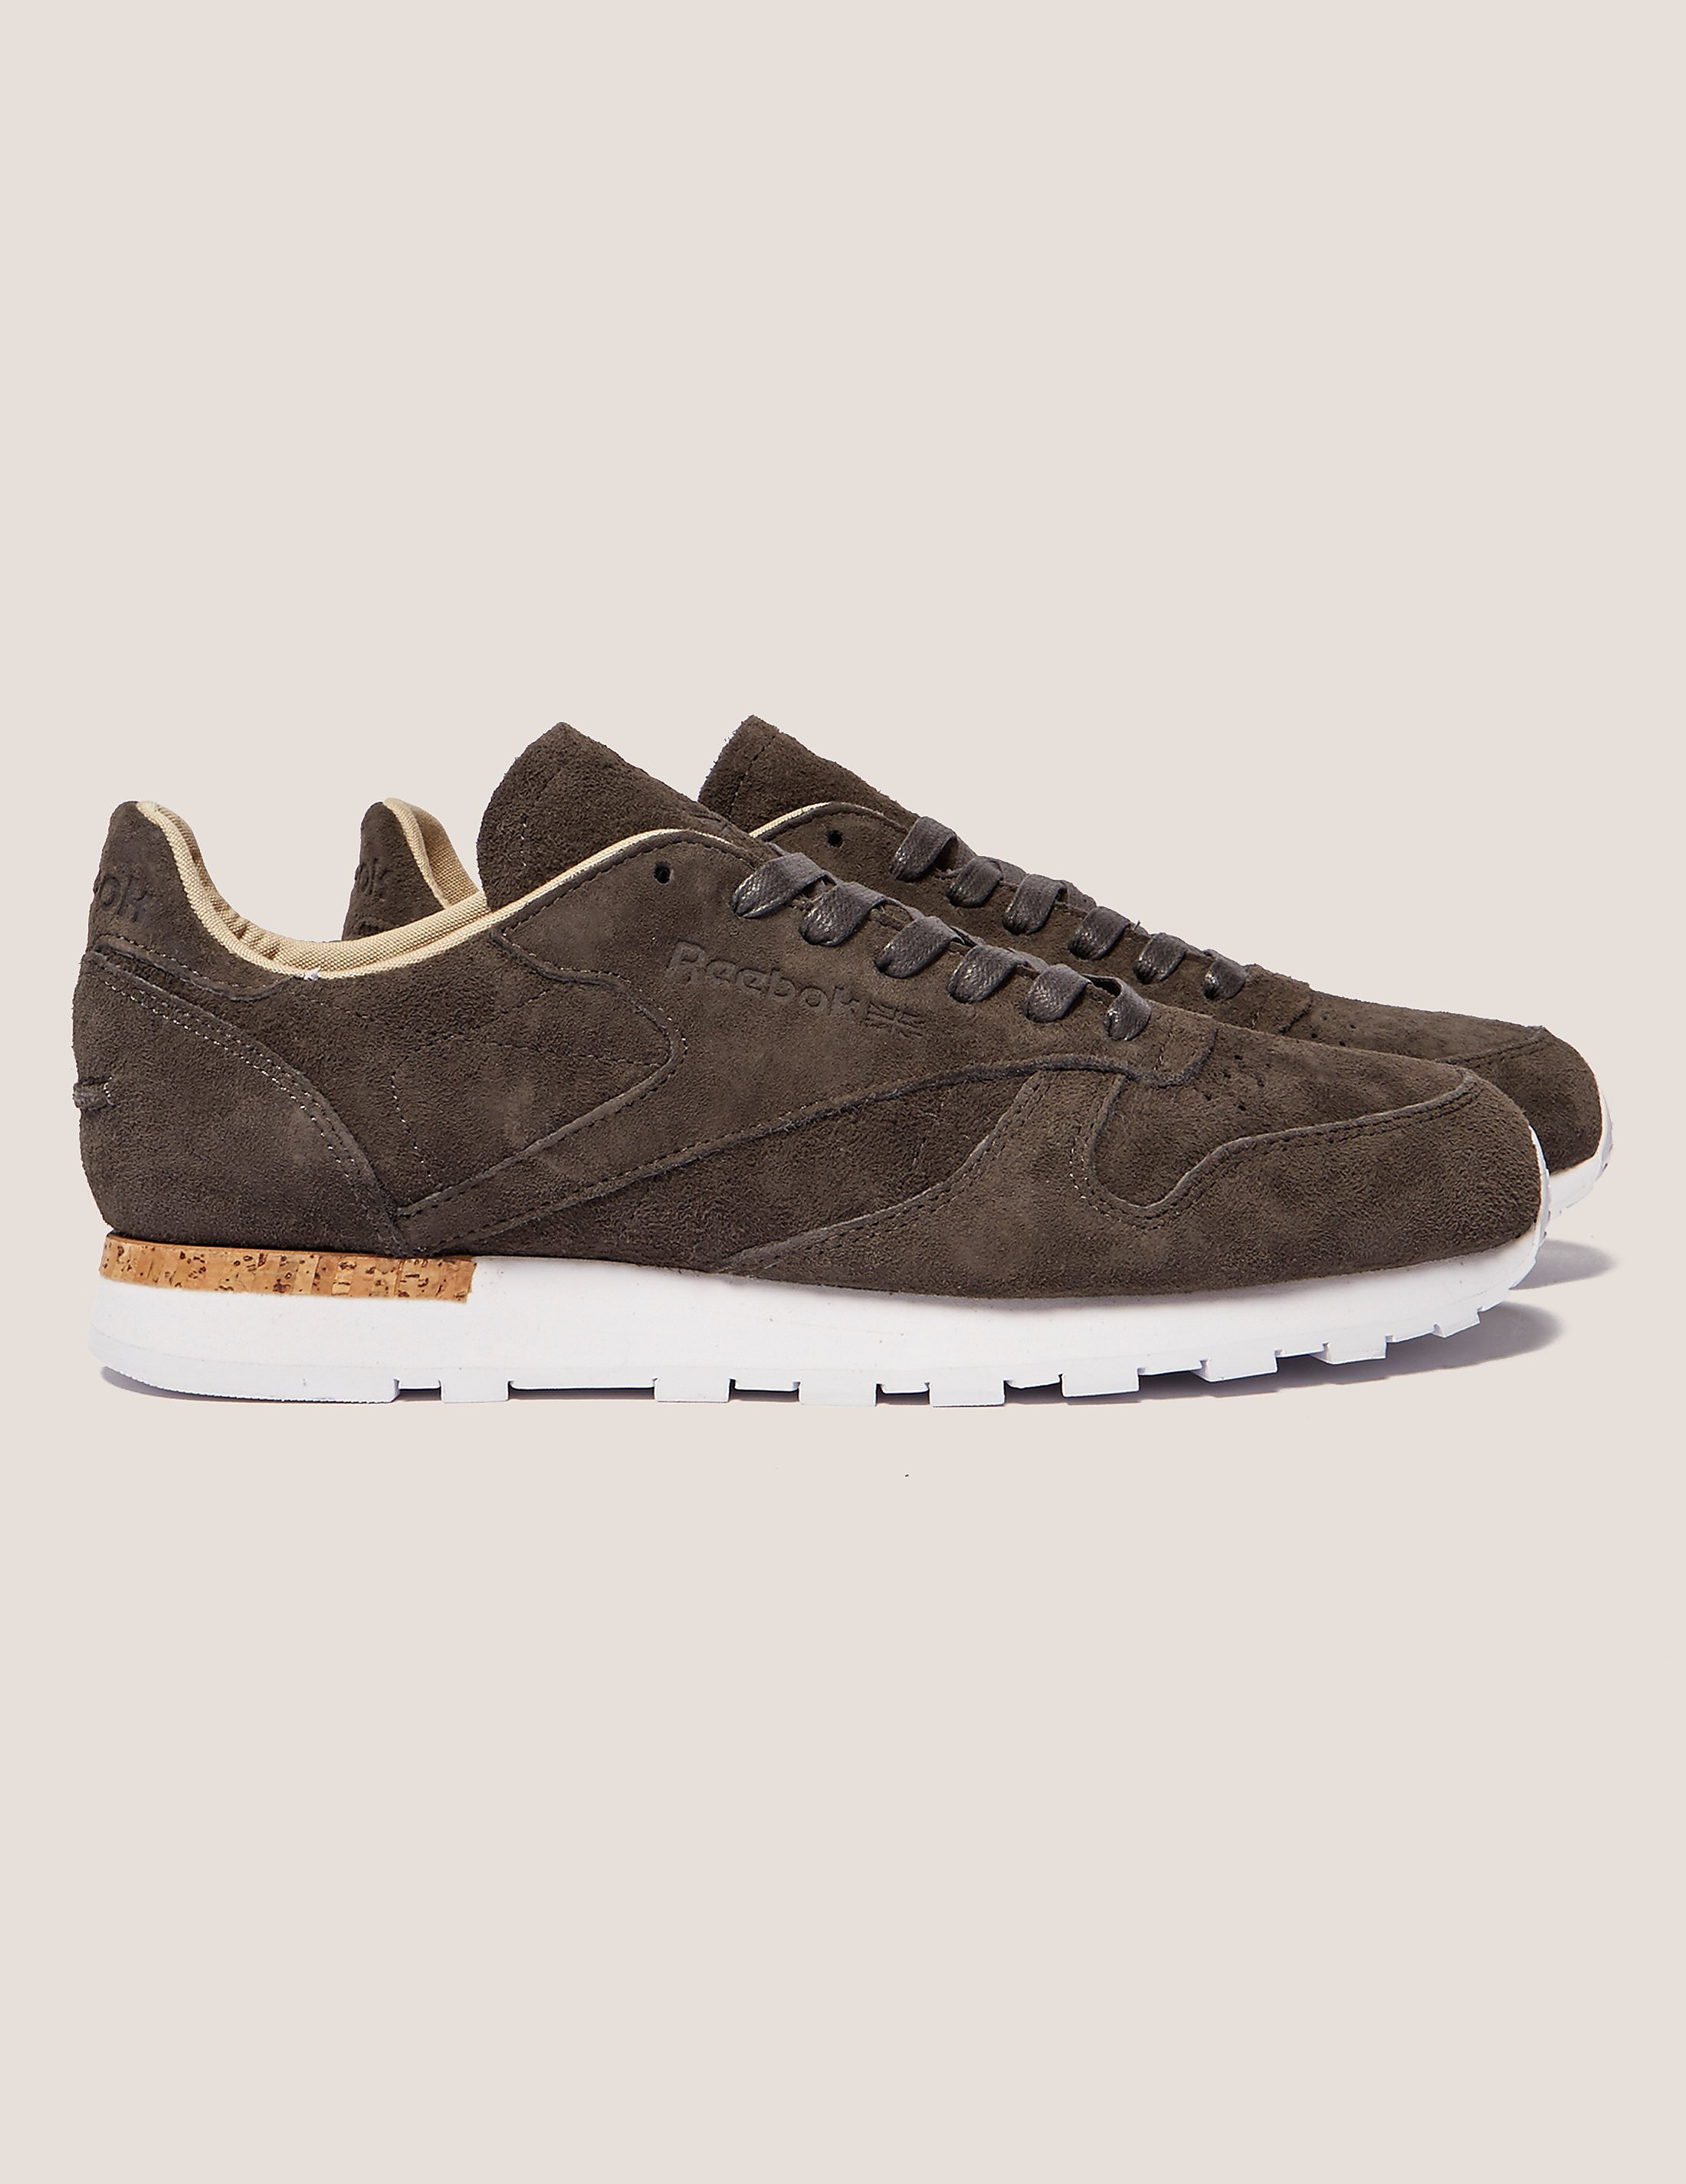 Reebok Classic Leather Lst